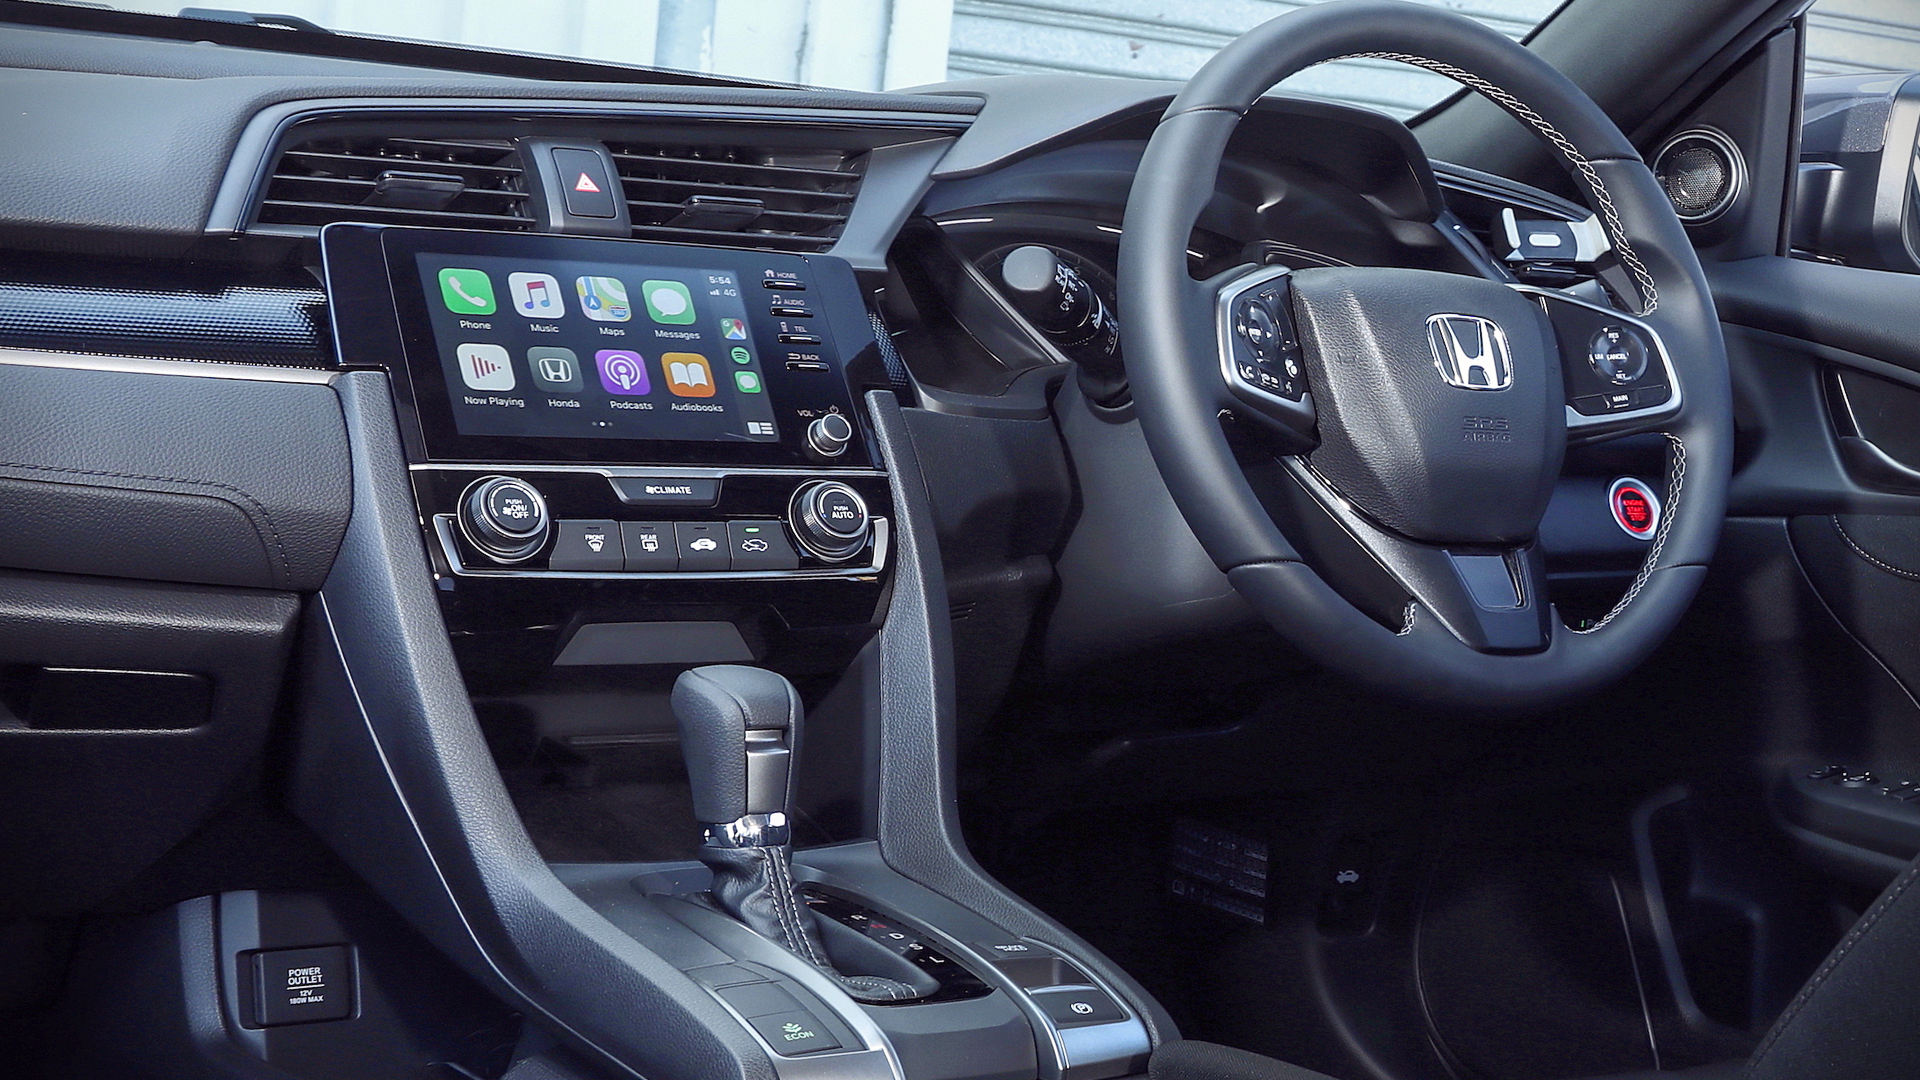 Honda Civic Vti S 2020 Interior